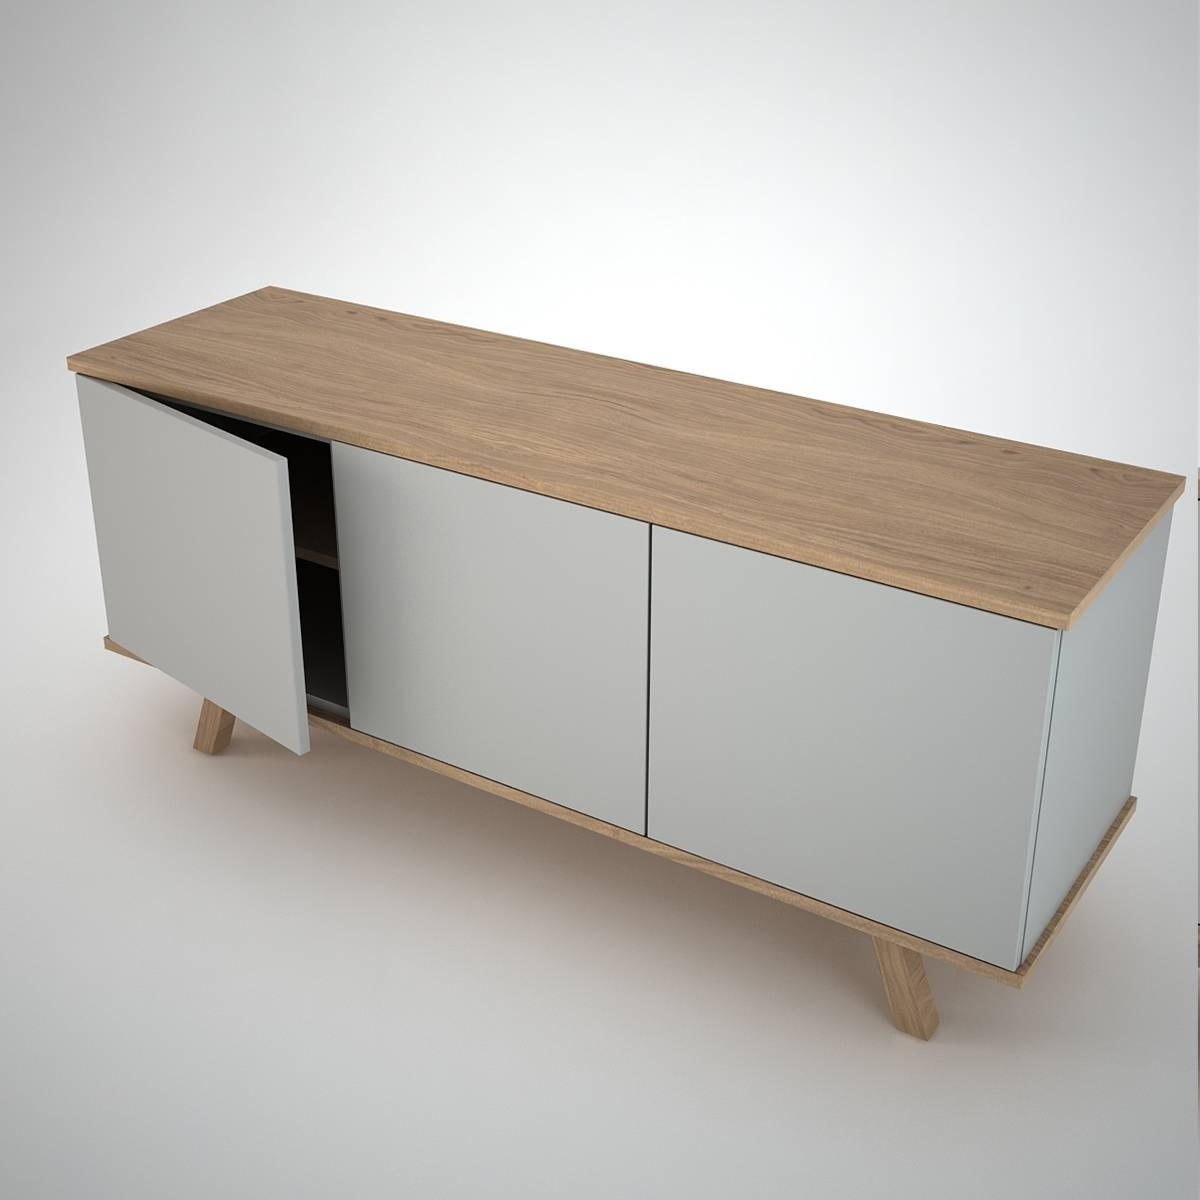 Ottawa Sideboard (3) Clay – Join Furniture Intended For Sideboards Contemporary (View 19 of 20)